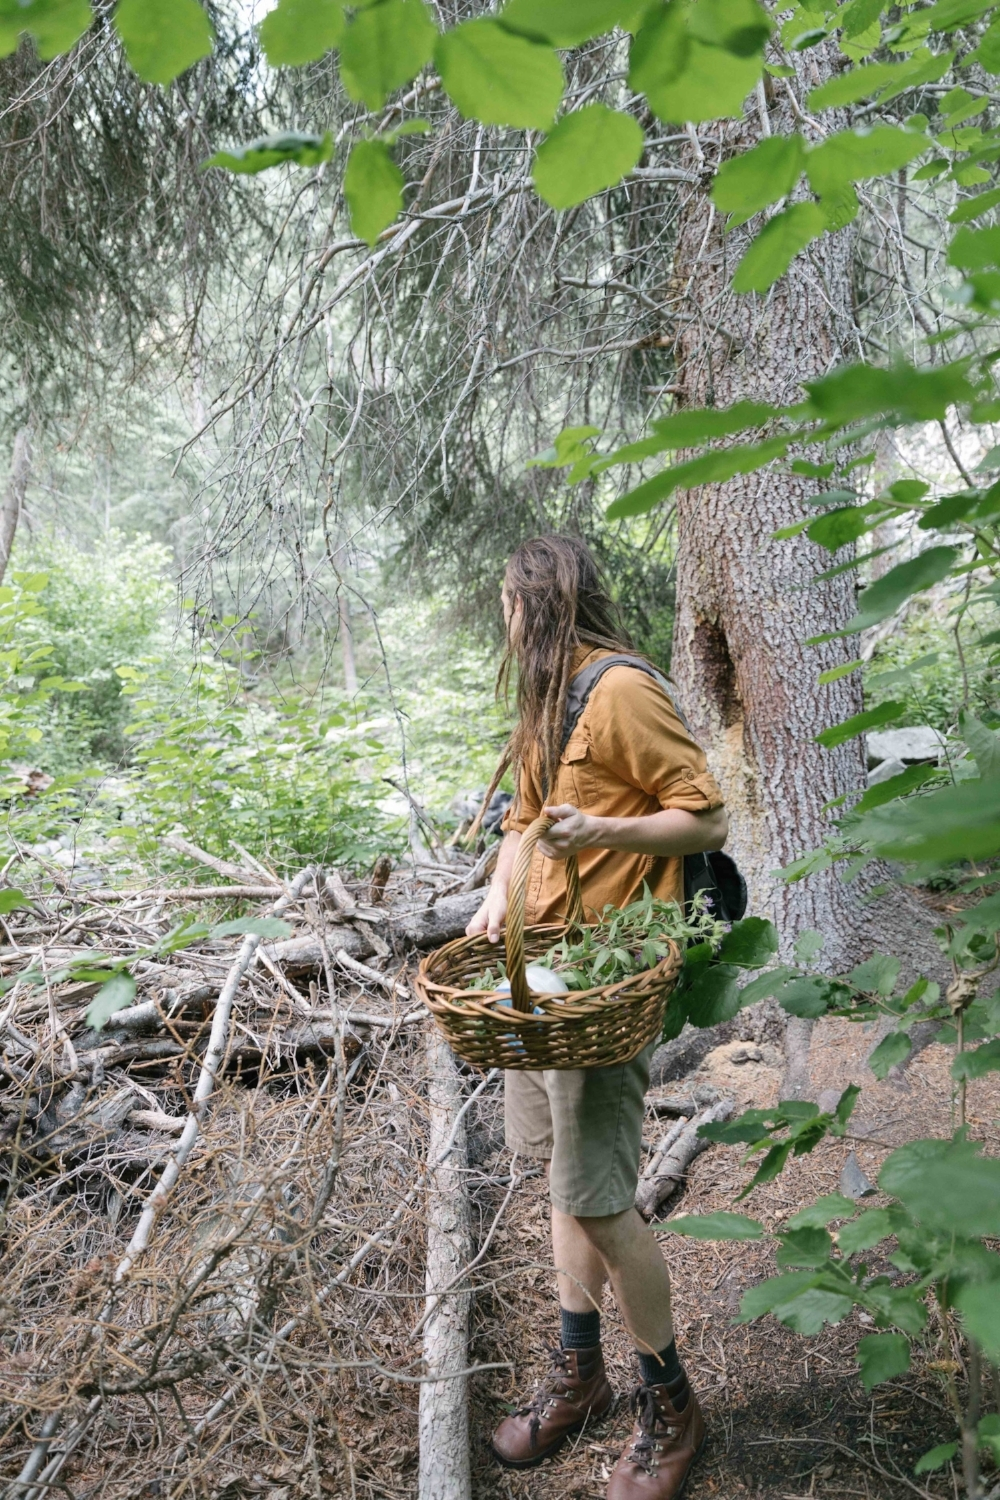 Jimena-Peck-Denver-Lifestyle-Editorial-Photographer-Daniel-Gray's-Sourdough-Bread-Forest-Basket